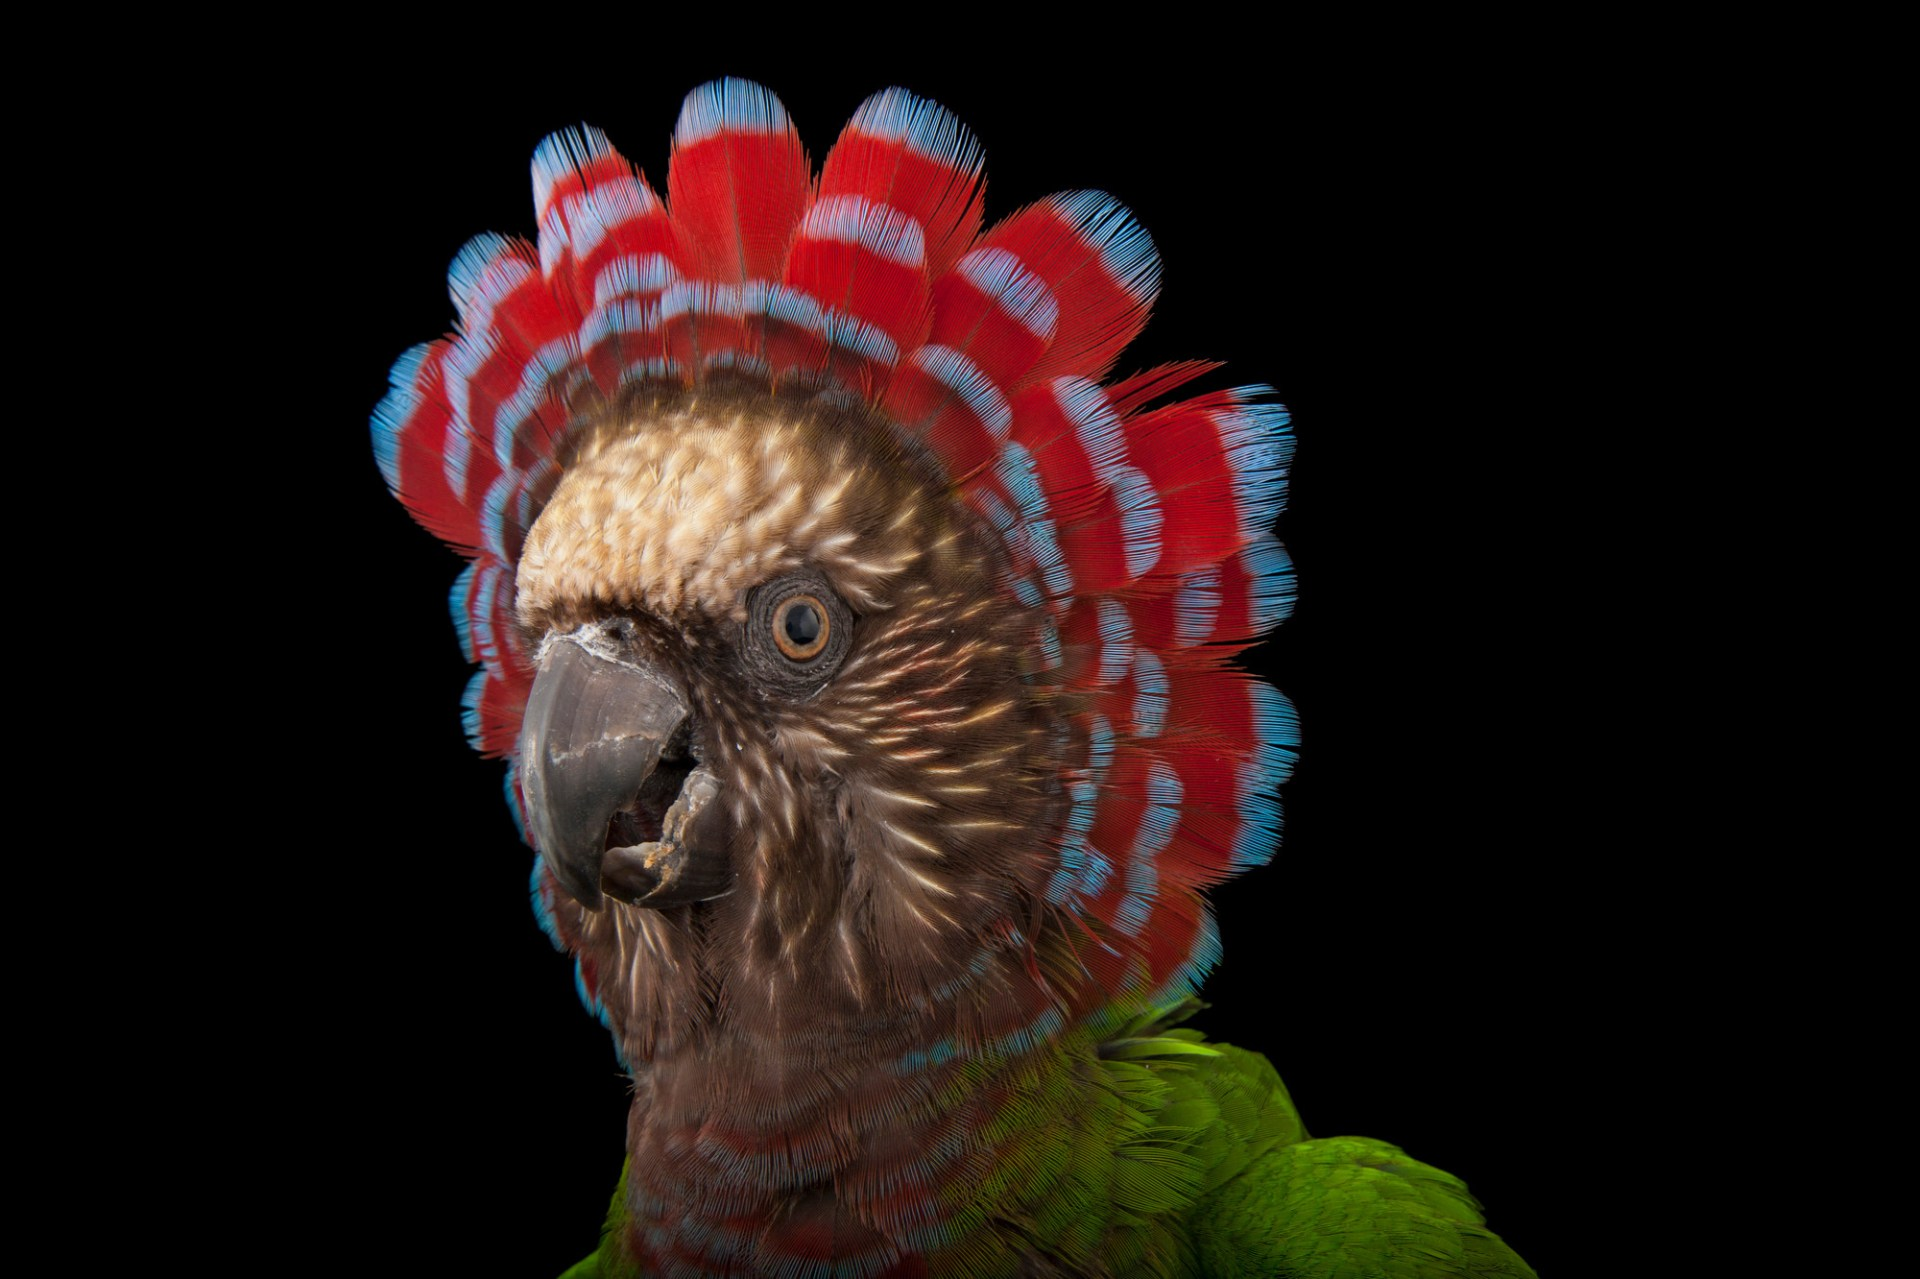 A red fan parrot (Deroptyus accipitrinus accipitrinus) at the Houston Zoo.